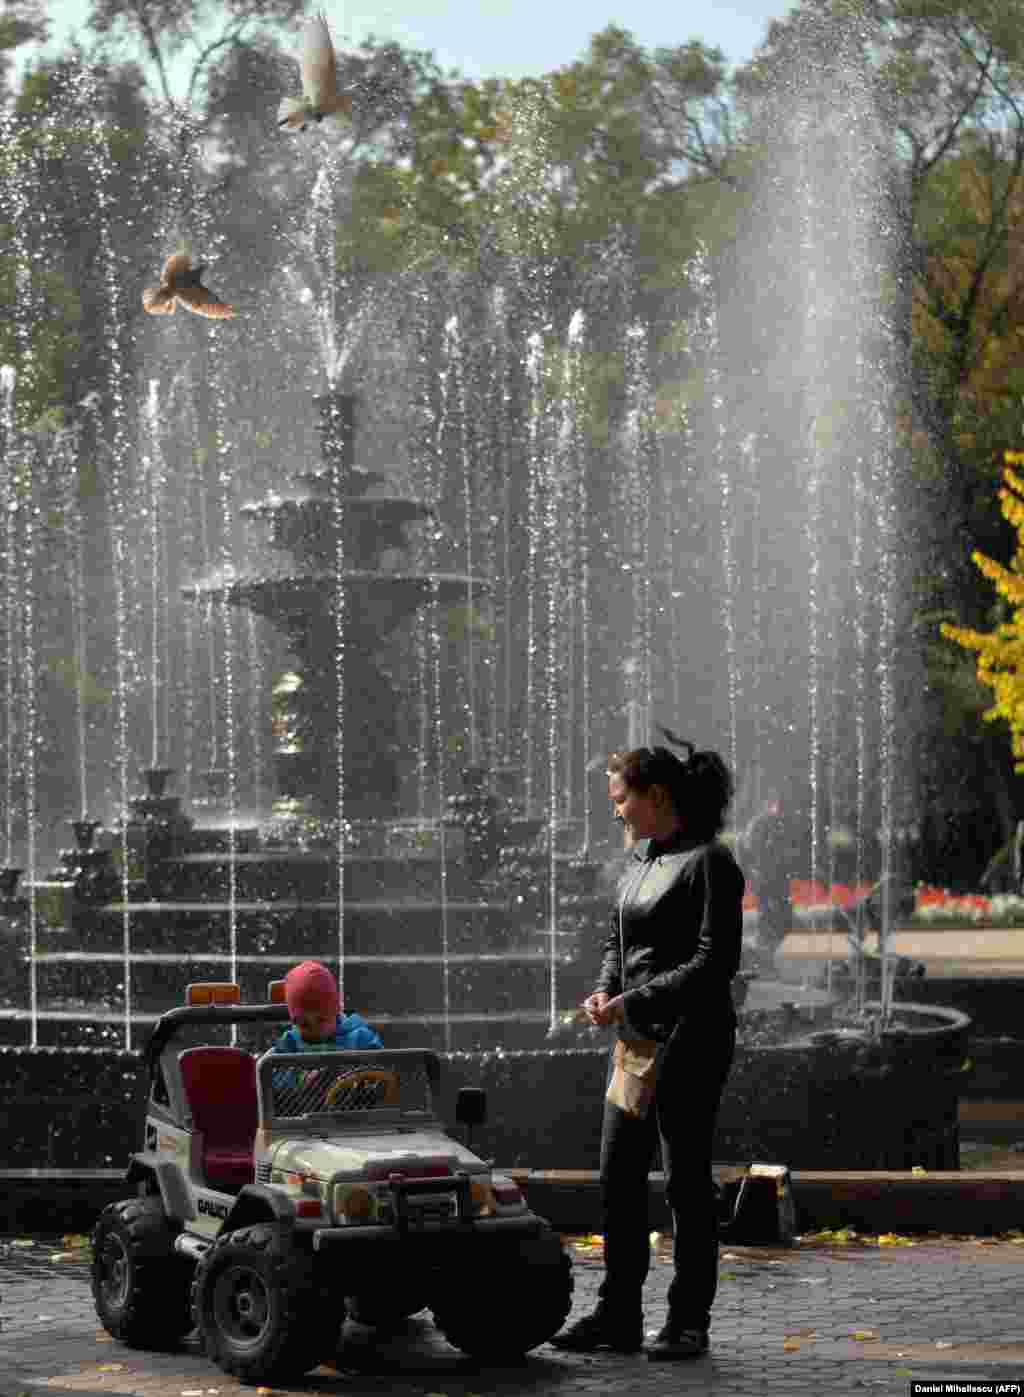 A child plays near a fountain in a downtown park.